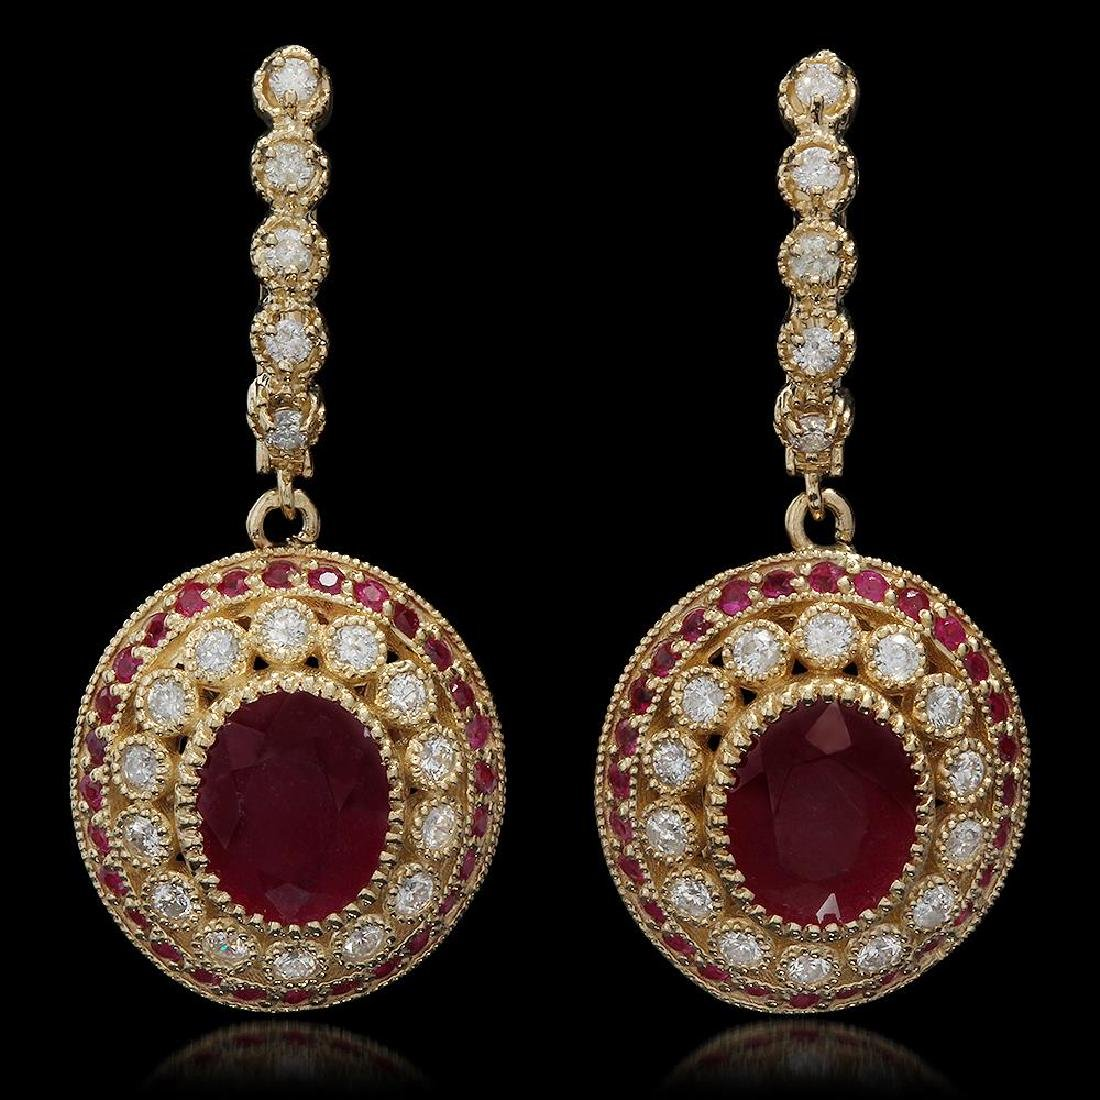 14K Gold 6.70ct Ruby 1.20ct Diamond Earrings